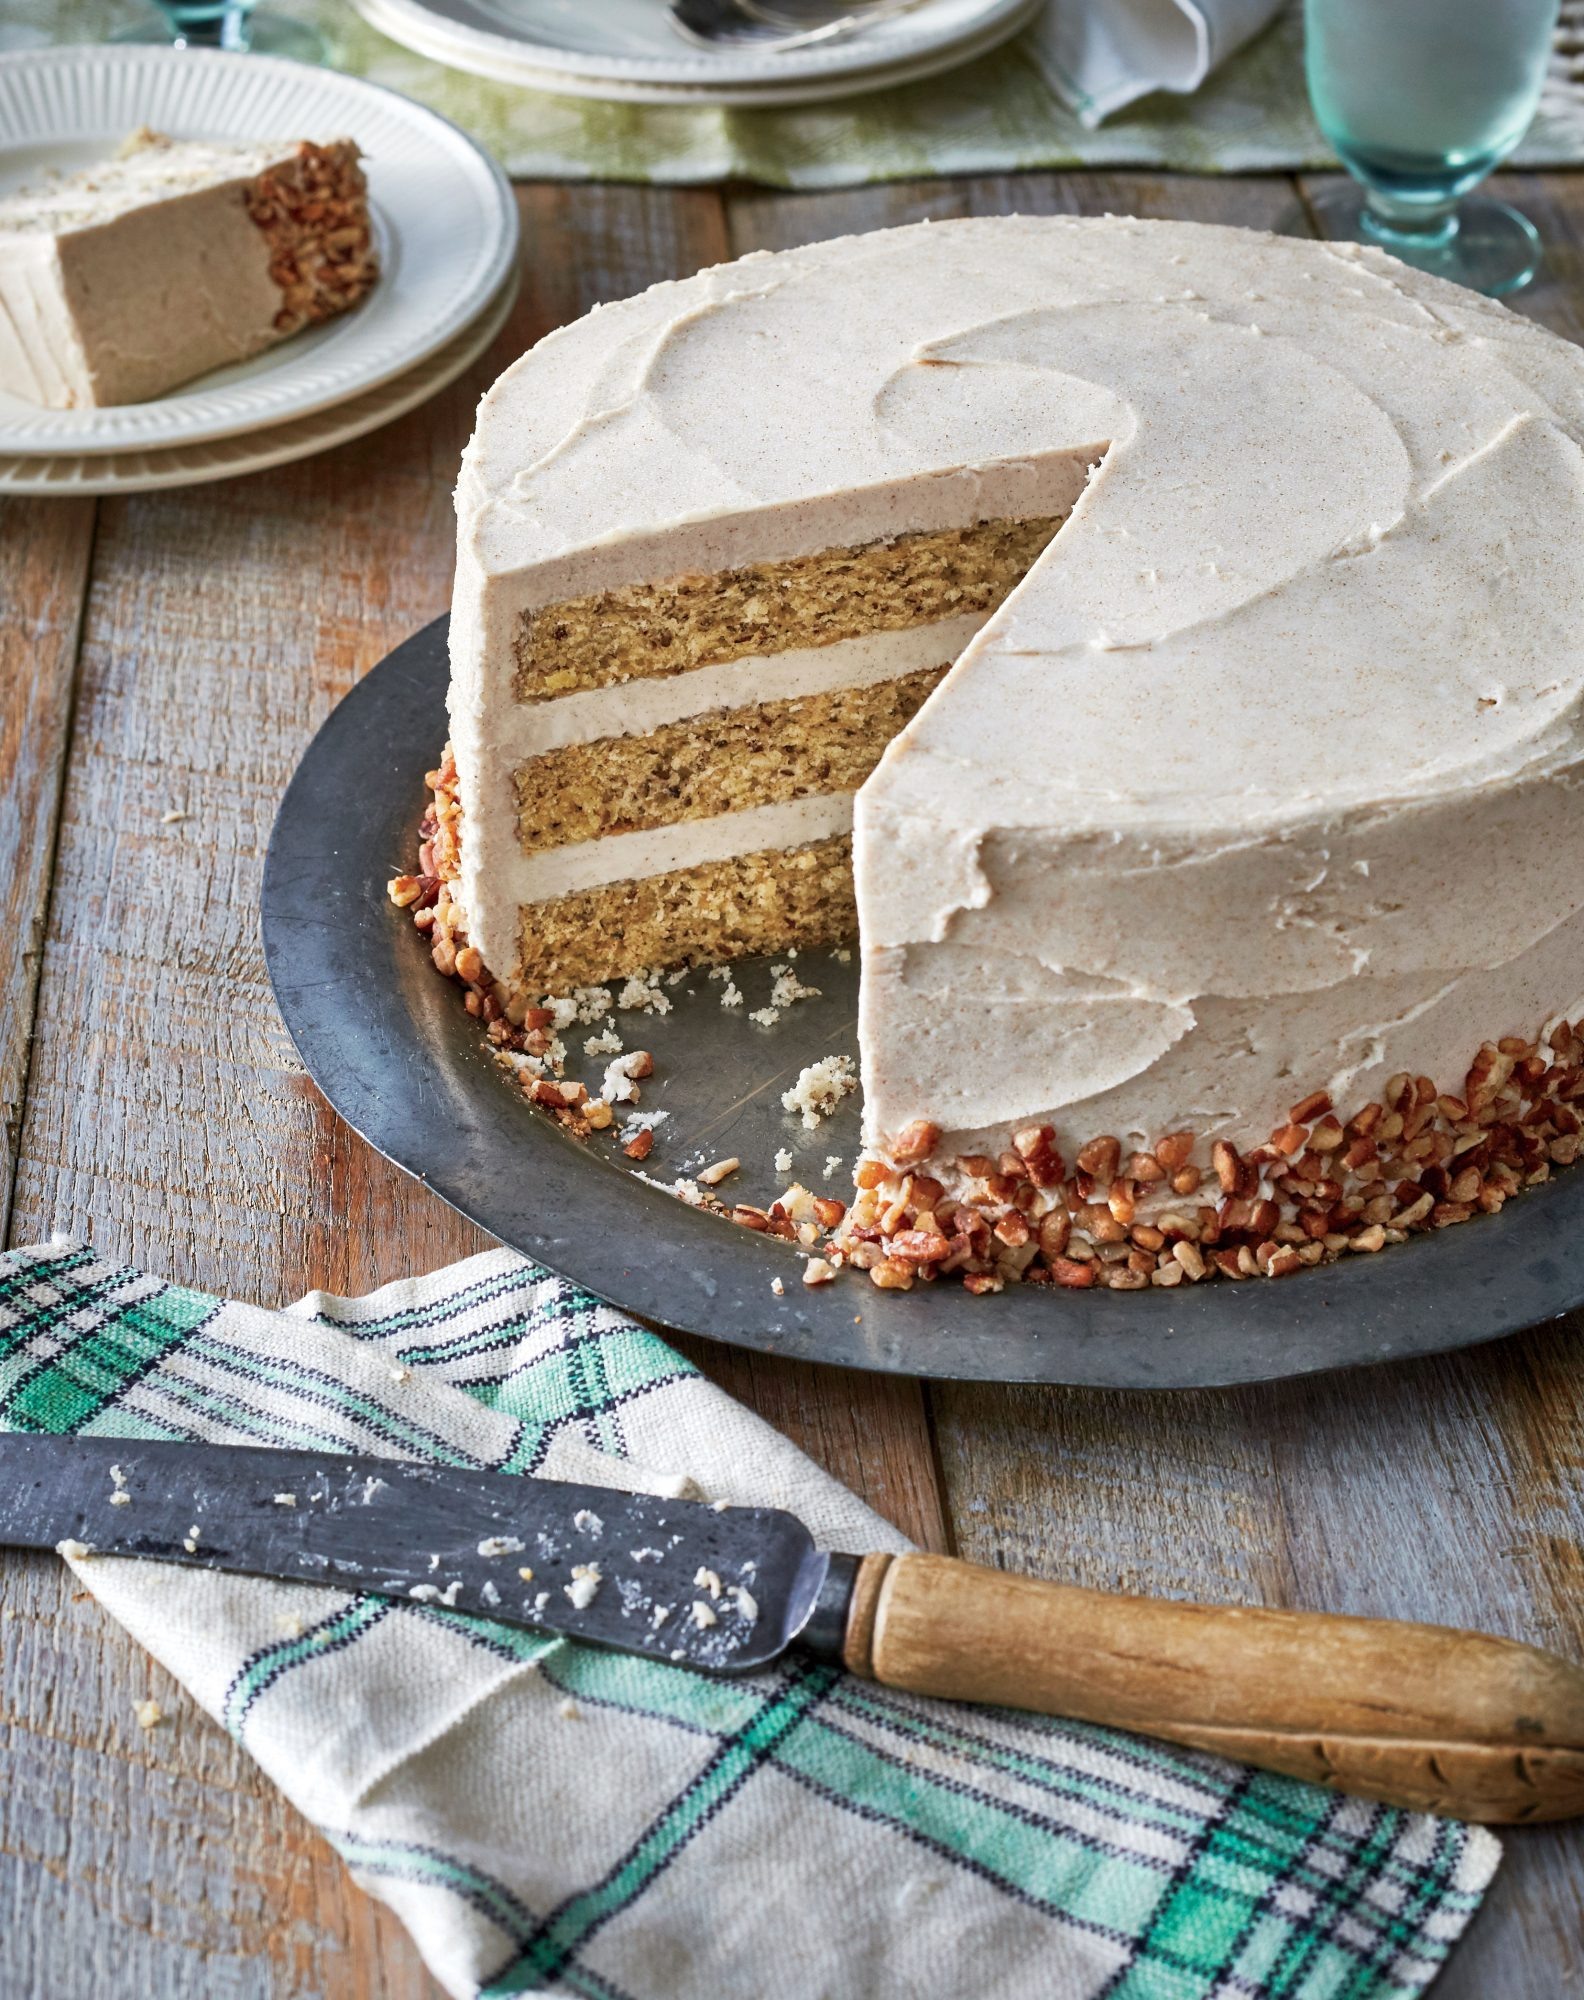 Butter Pecan Layer Cake with Browned Butter Frosting